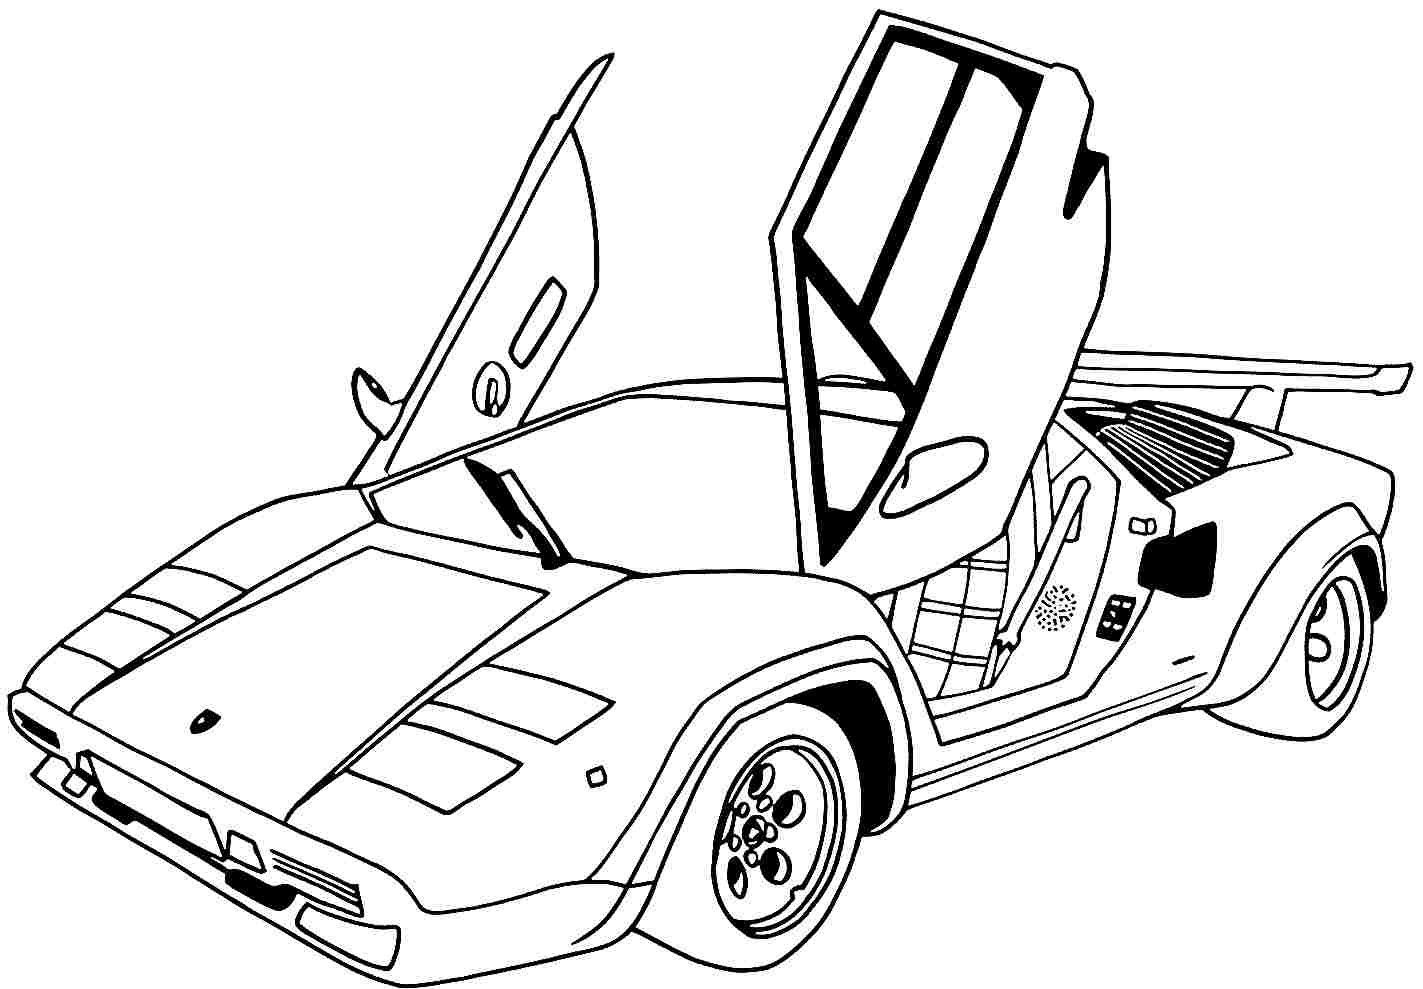 colouring pics of cars kindergarten coloring pages easy cars coloring home cars of pics colouring